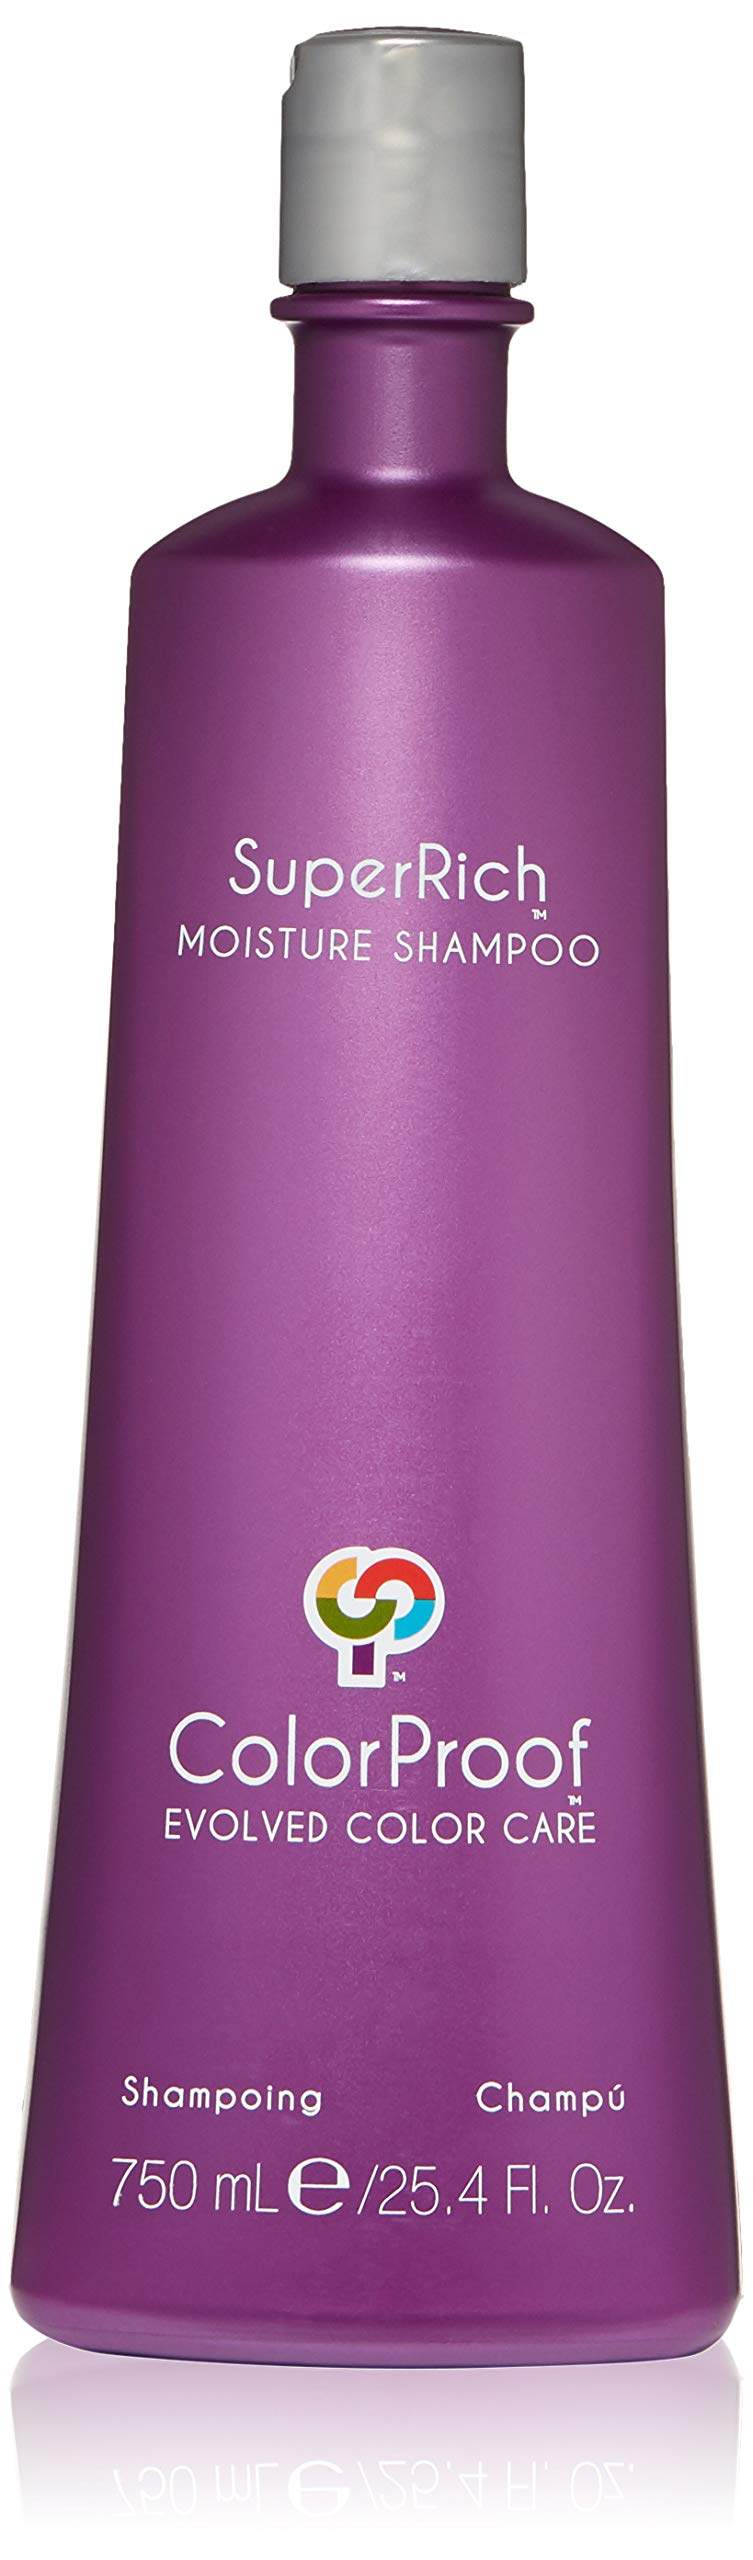 Colorproof SuperRich Moisture Shampoo 25.4 OZ by ColorProof Evolved Color Care